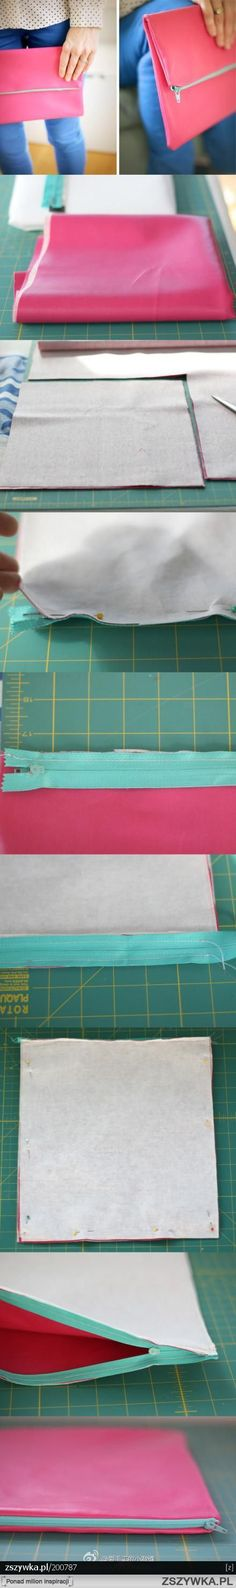 DIY Fashion. Make your own simple clutch with zipper. Im using this tutorial to make a sleeve for my iPad!                                                                                                                                                      Más